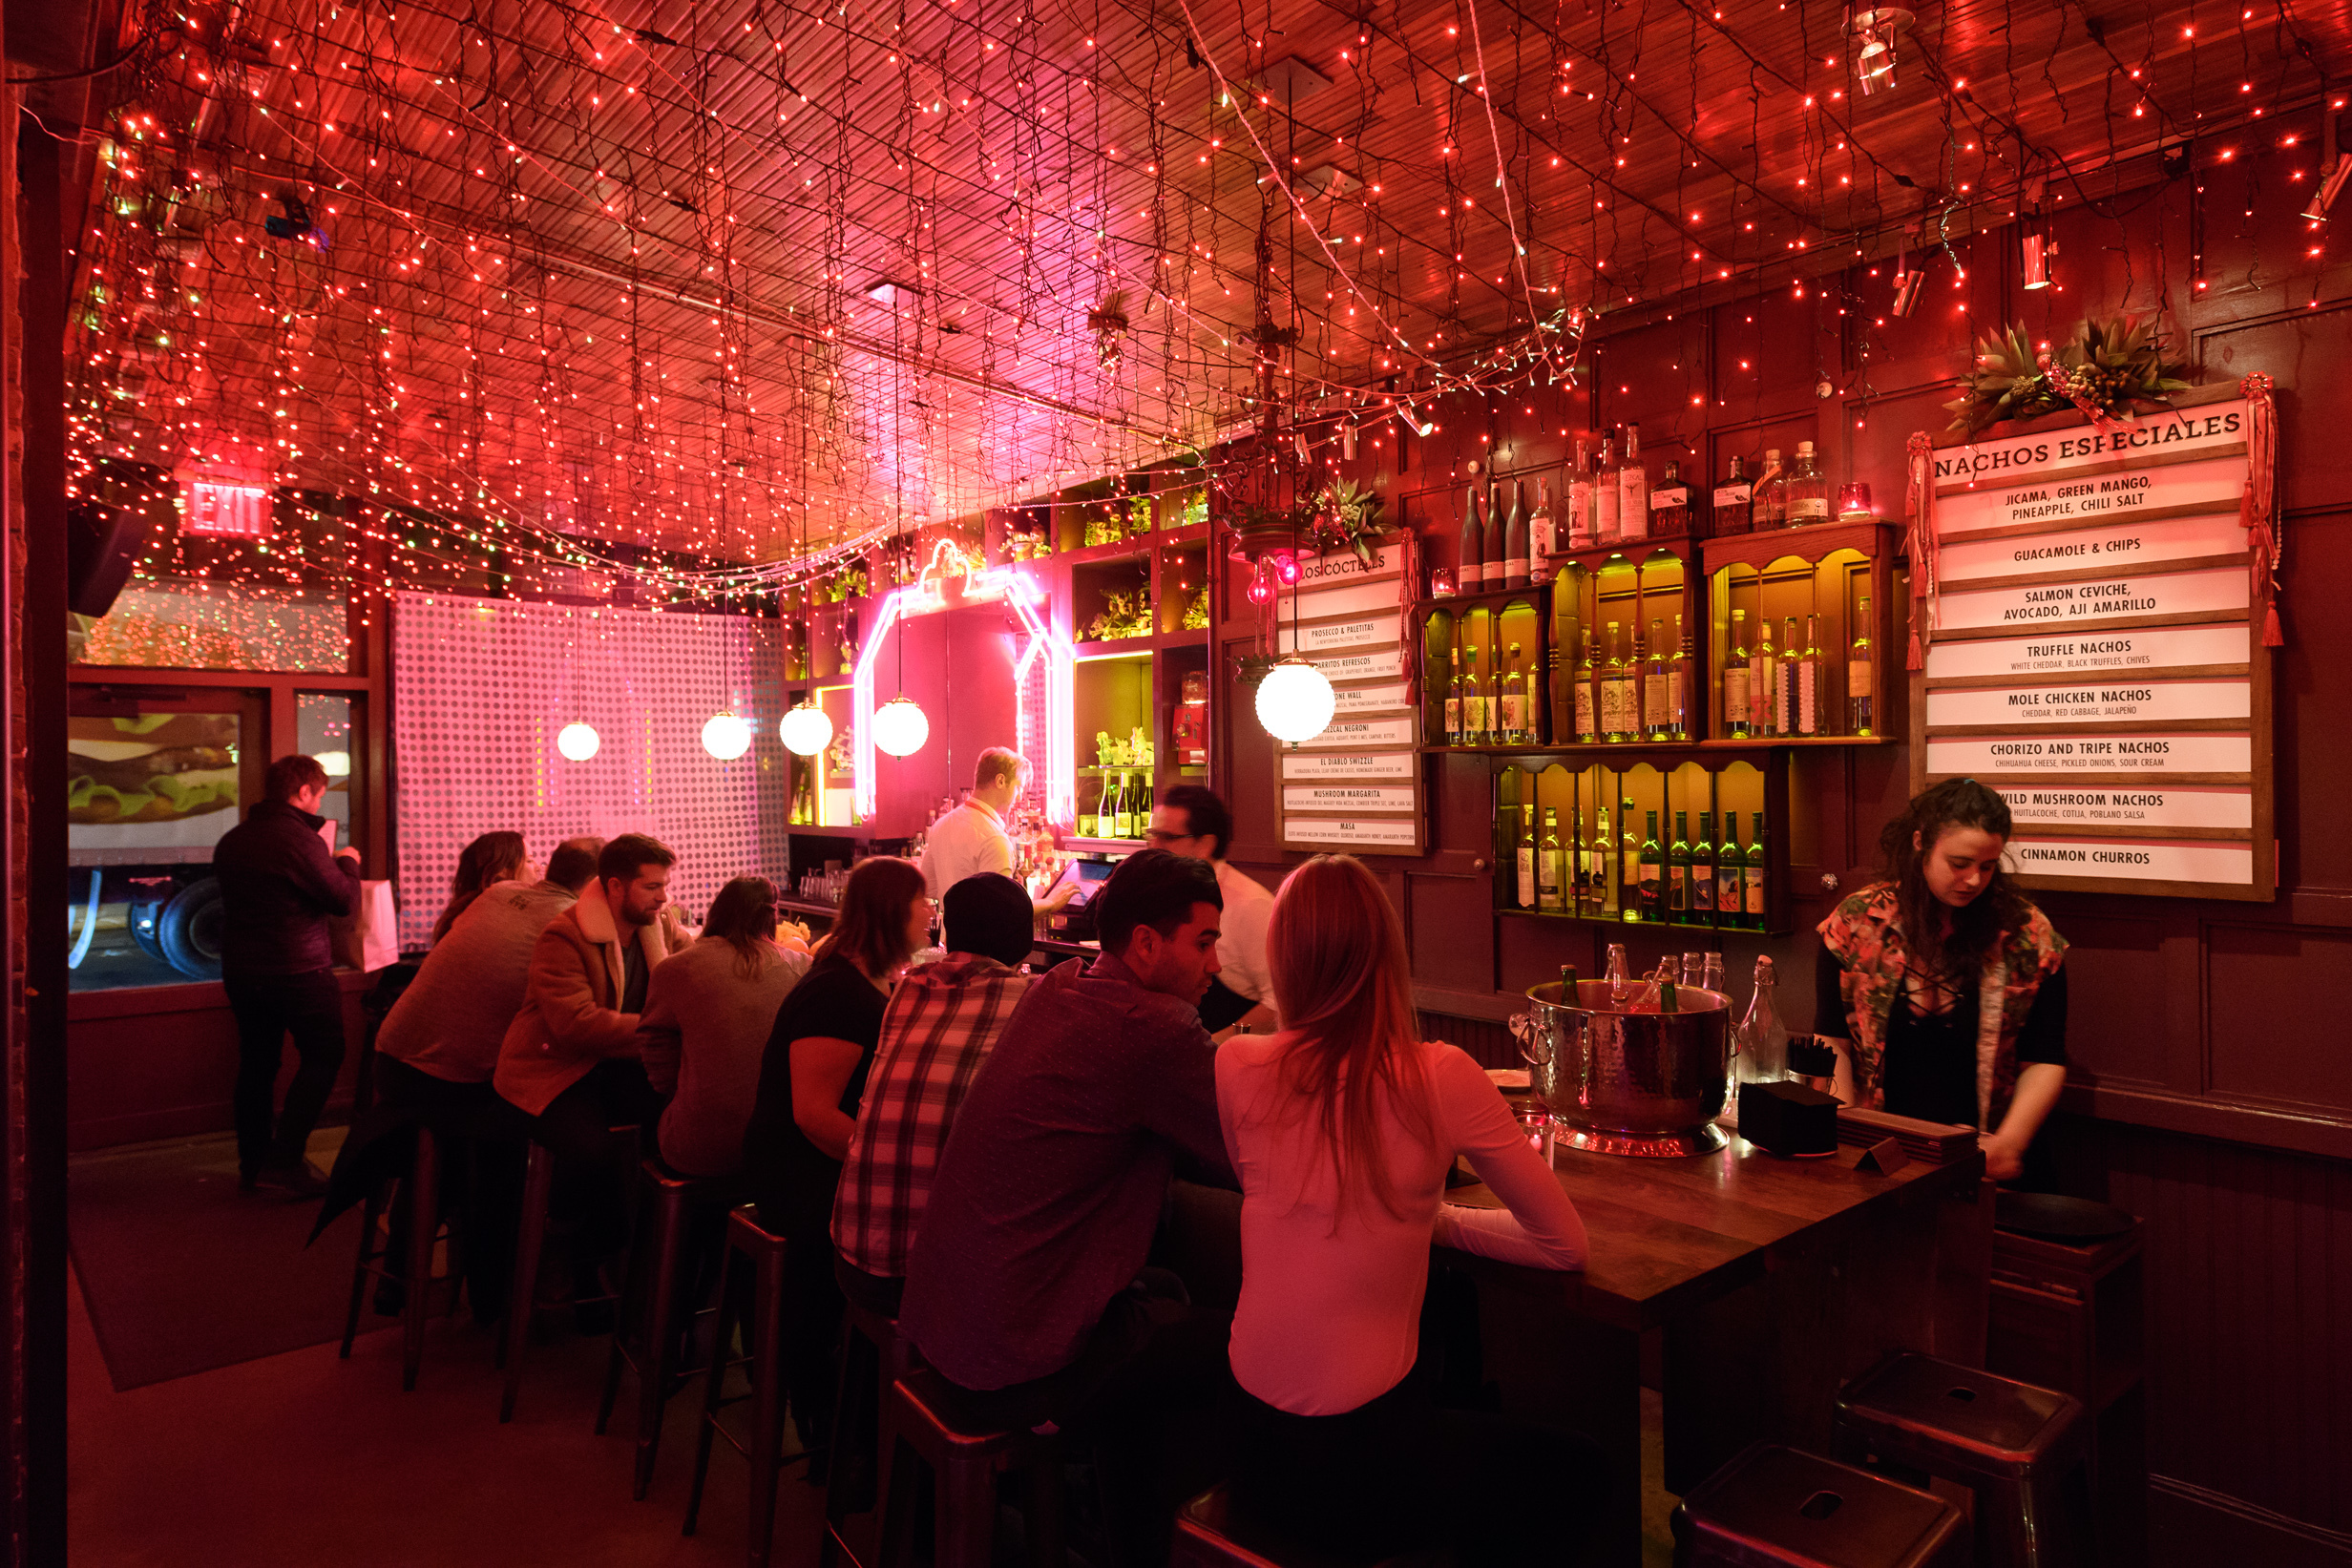 The best-looking bars in NYC